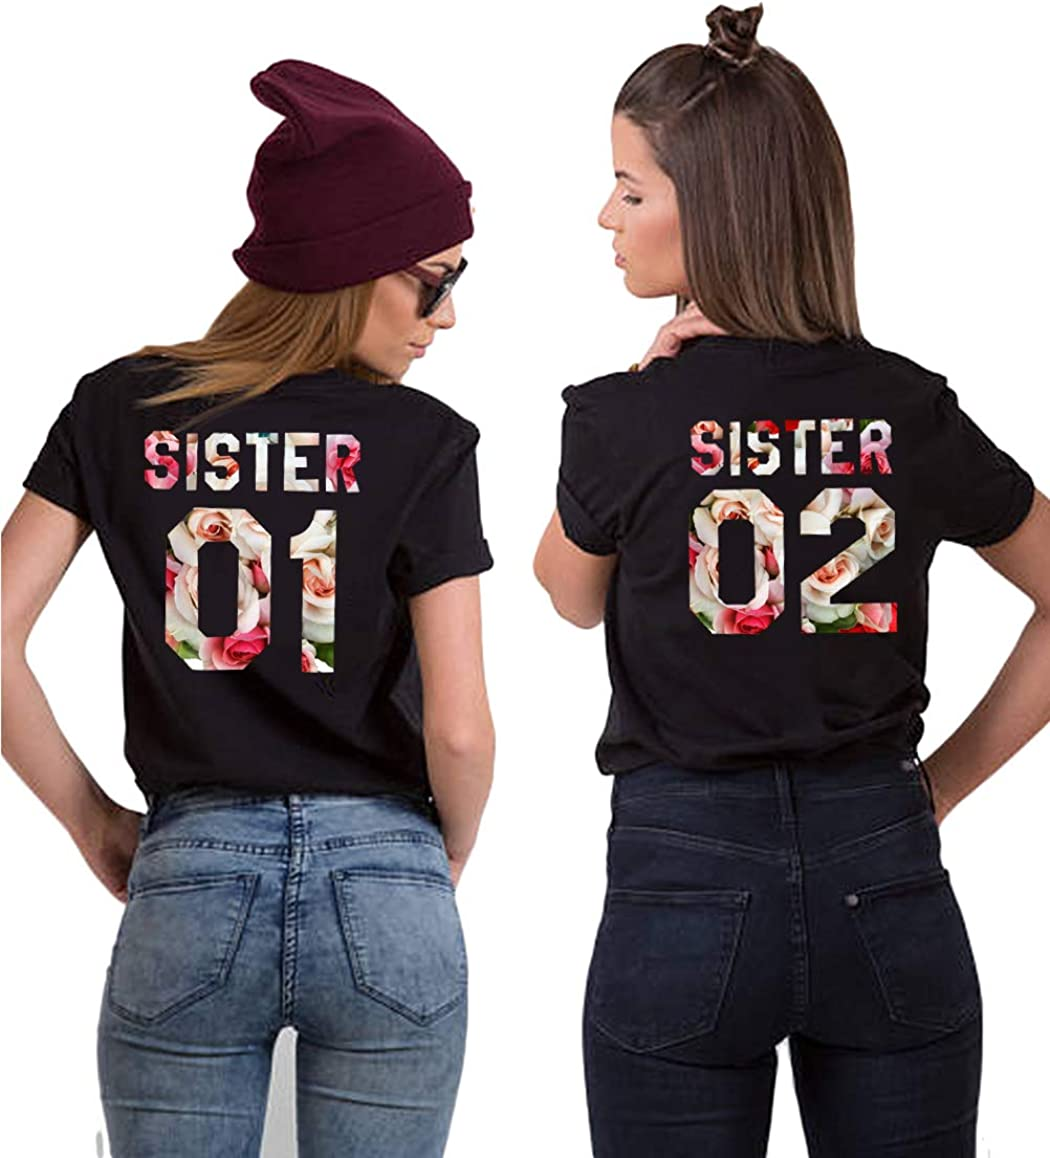 Soul Couple Best Friend Shirts for Two Matching BFF Shirts Sister T-Shirts for Women 8 Color